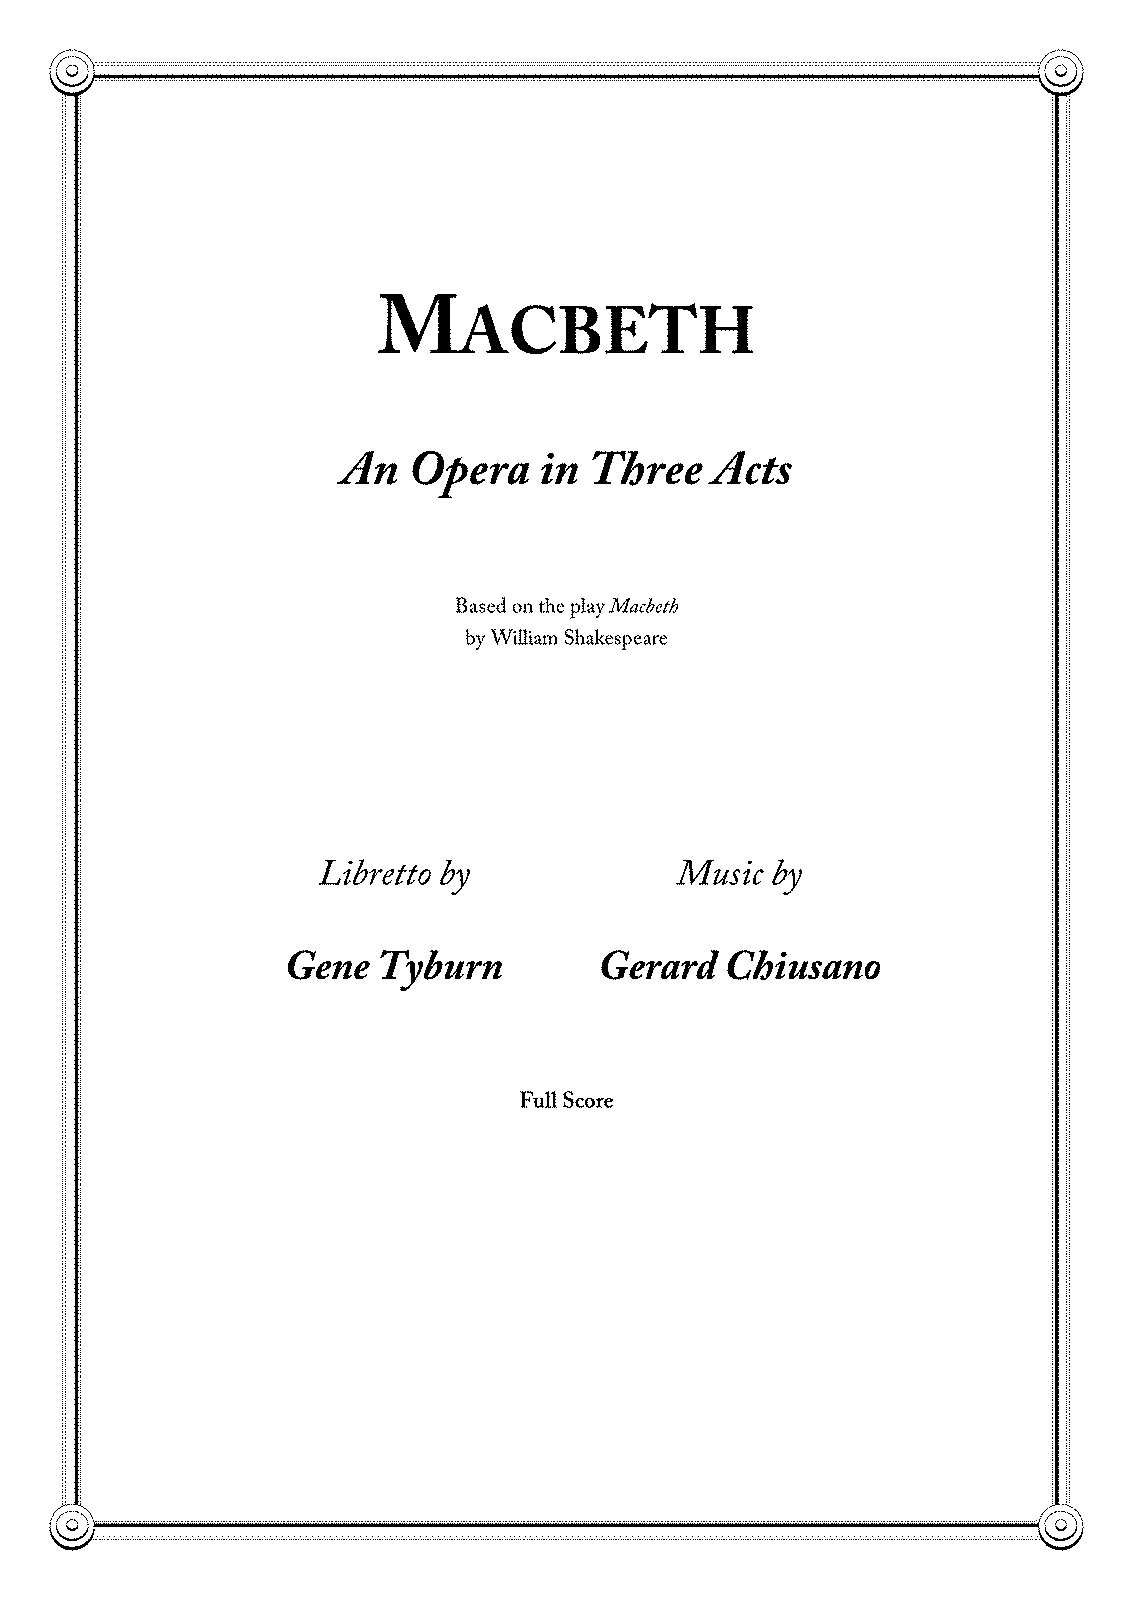 PMLP395777-Macbeth FULL SCORE.pdf